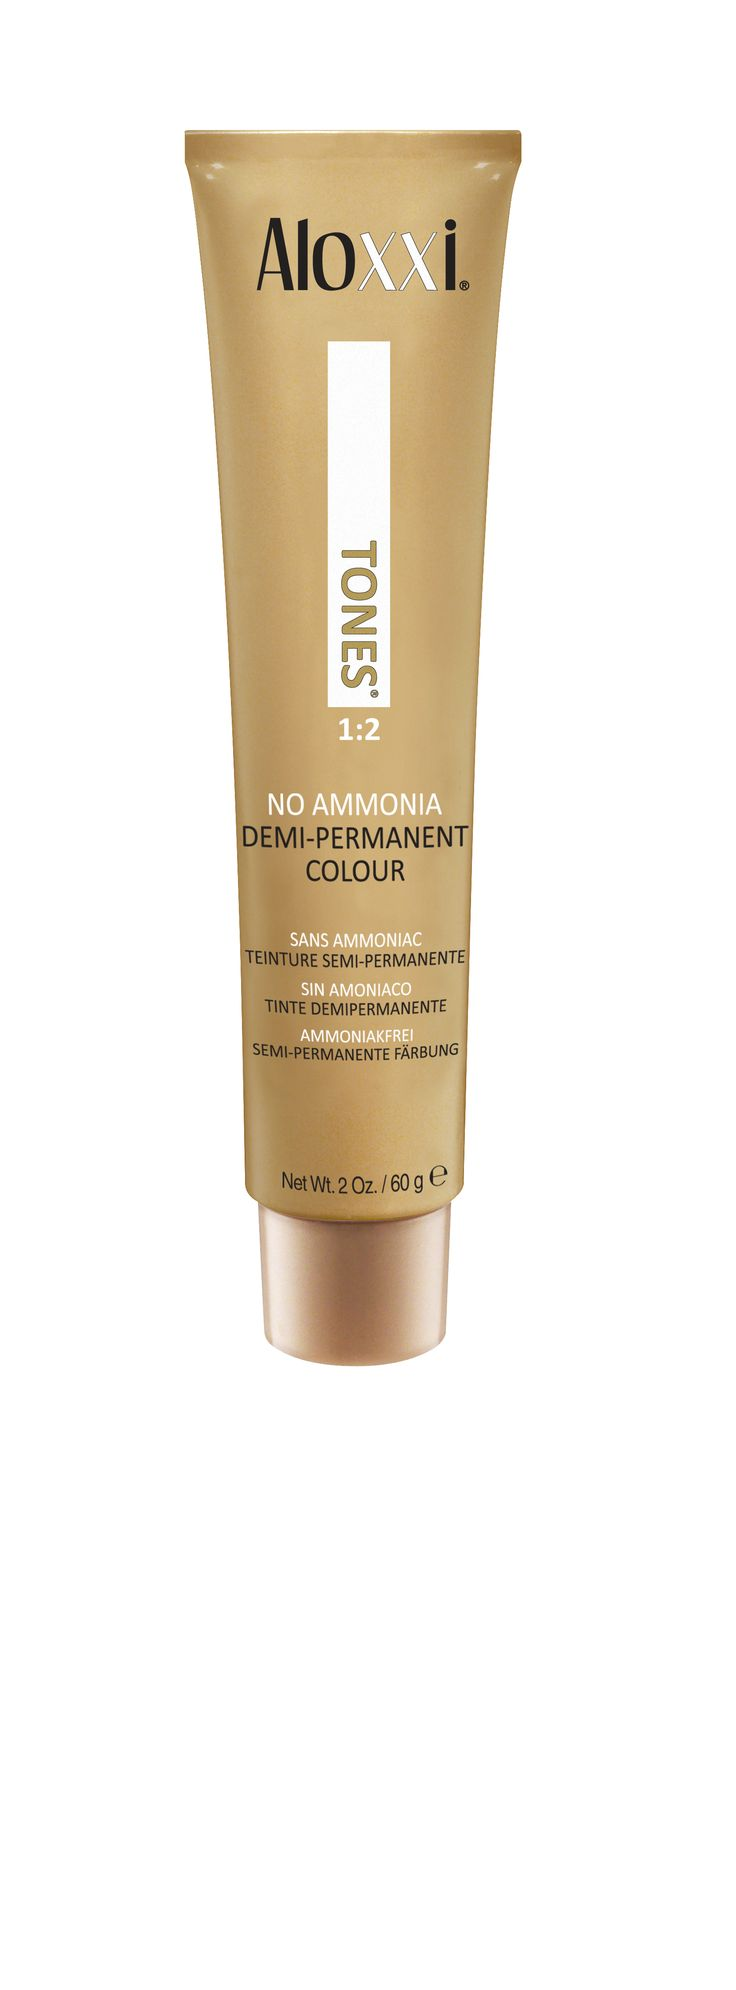 Aloxxi TONES Demi-Permanent Colour. TONES no lift Demi-Permanent Colour delivers beautiful depth and coverage and is the perfect partner for CHROMA Permanent Creme Color.  professional hair color | professional hair care | professional hair products | pro hair